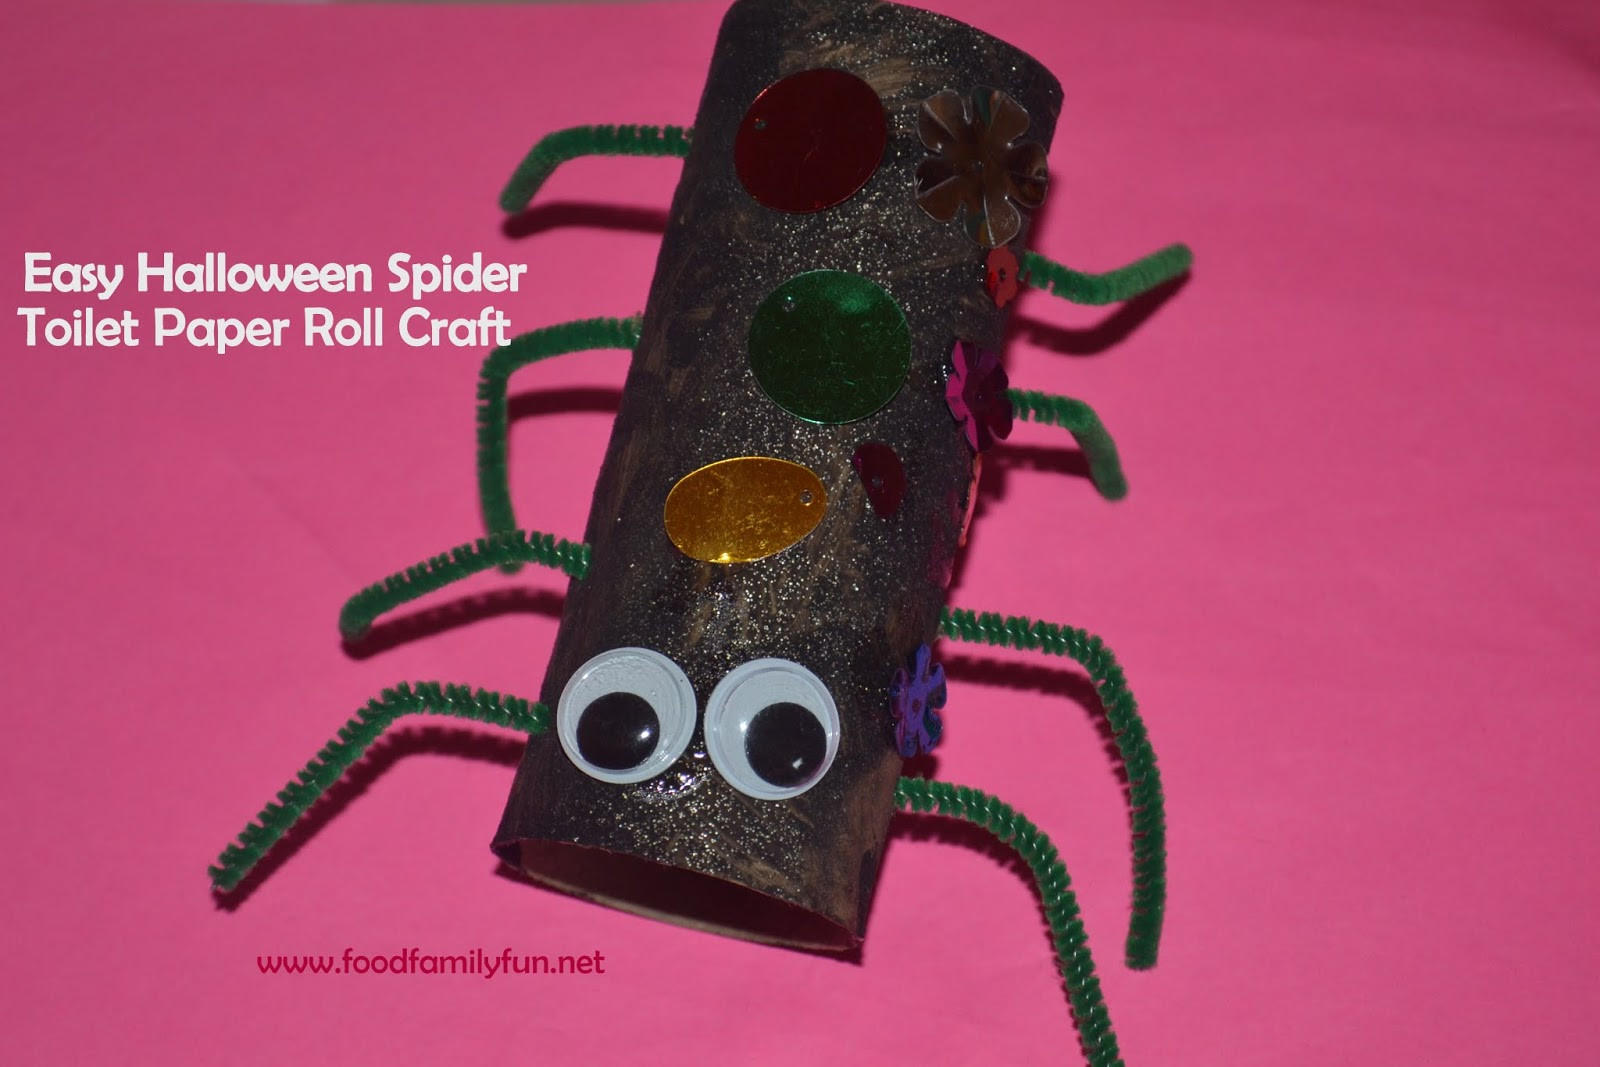 Toilet Paper Roll Halloween Crafts  Food Family Fun Halloween Toilet Paper Roll Spider Craft